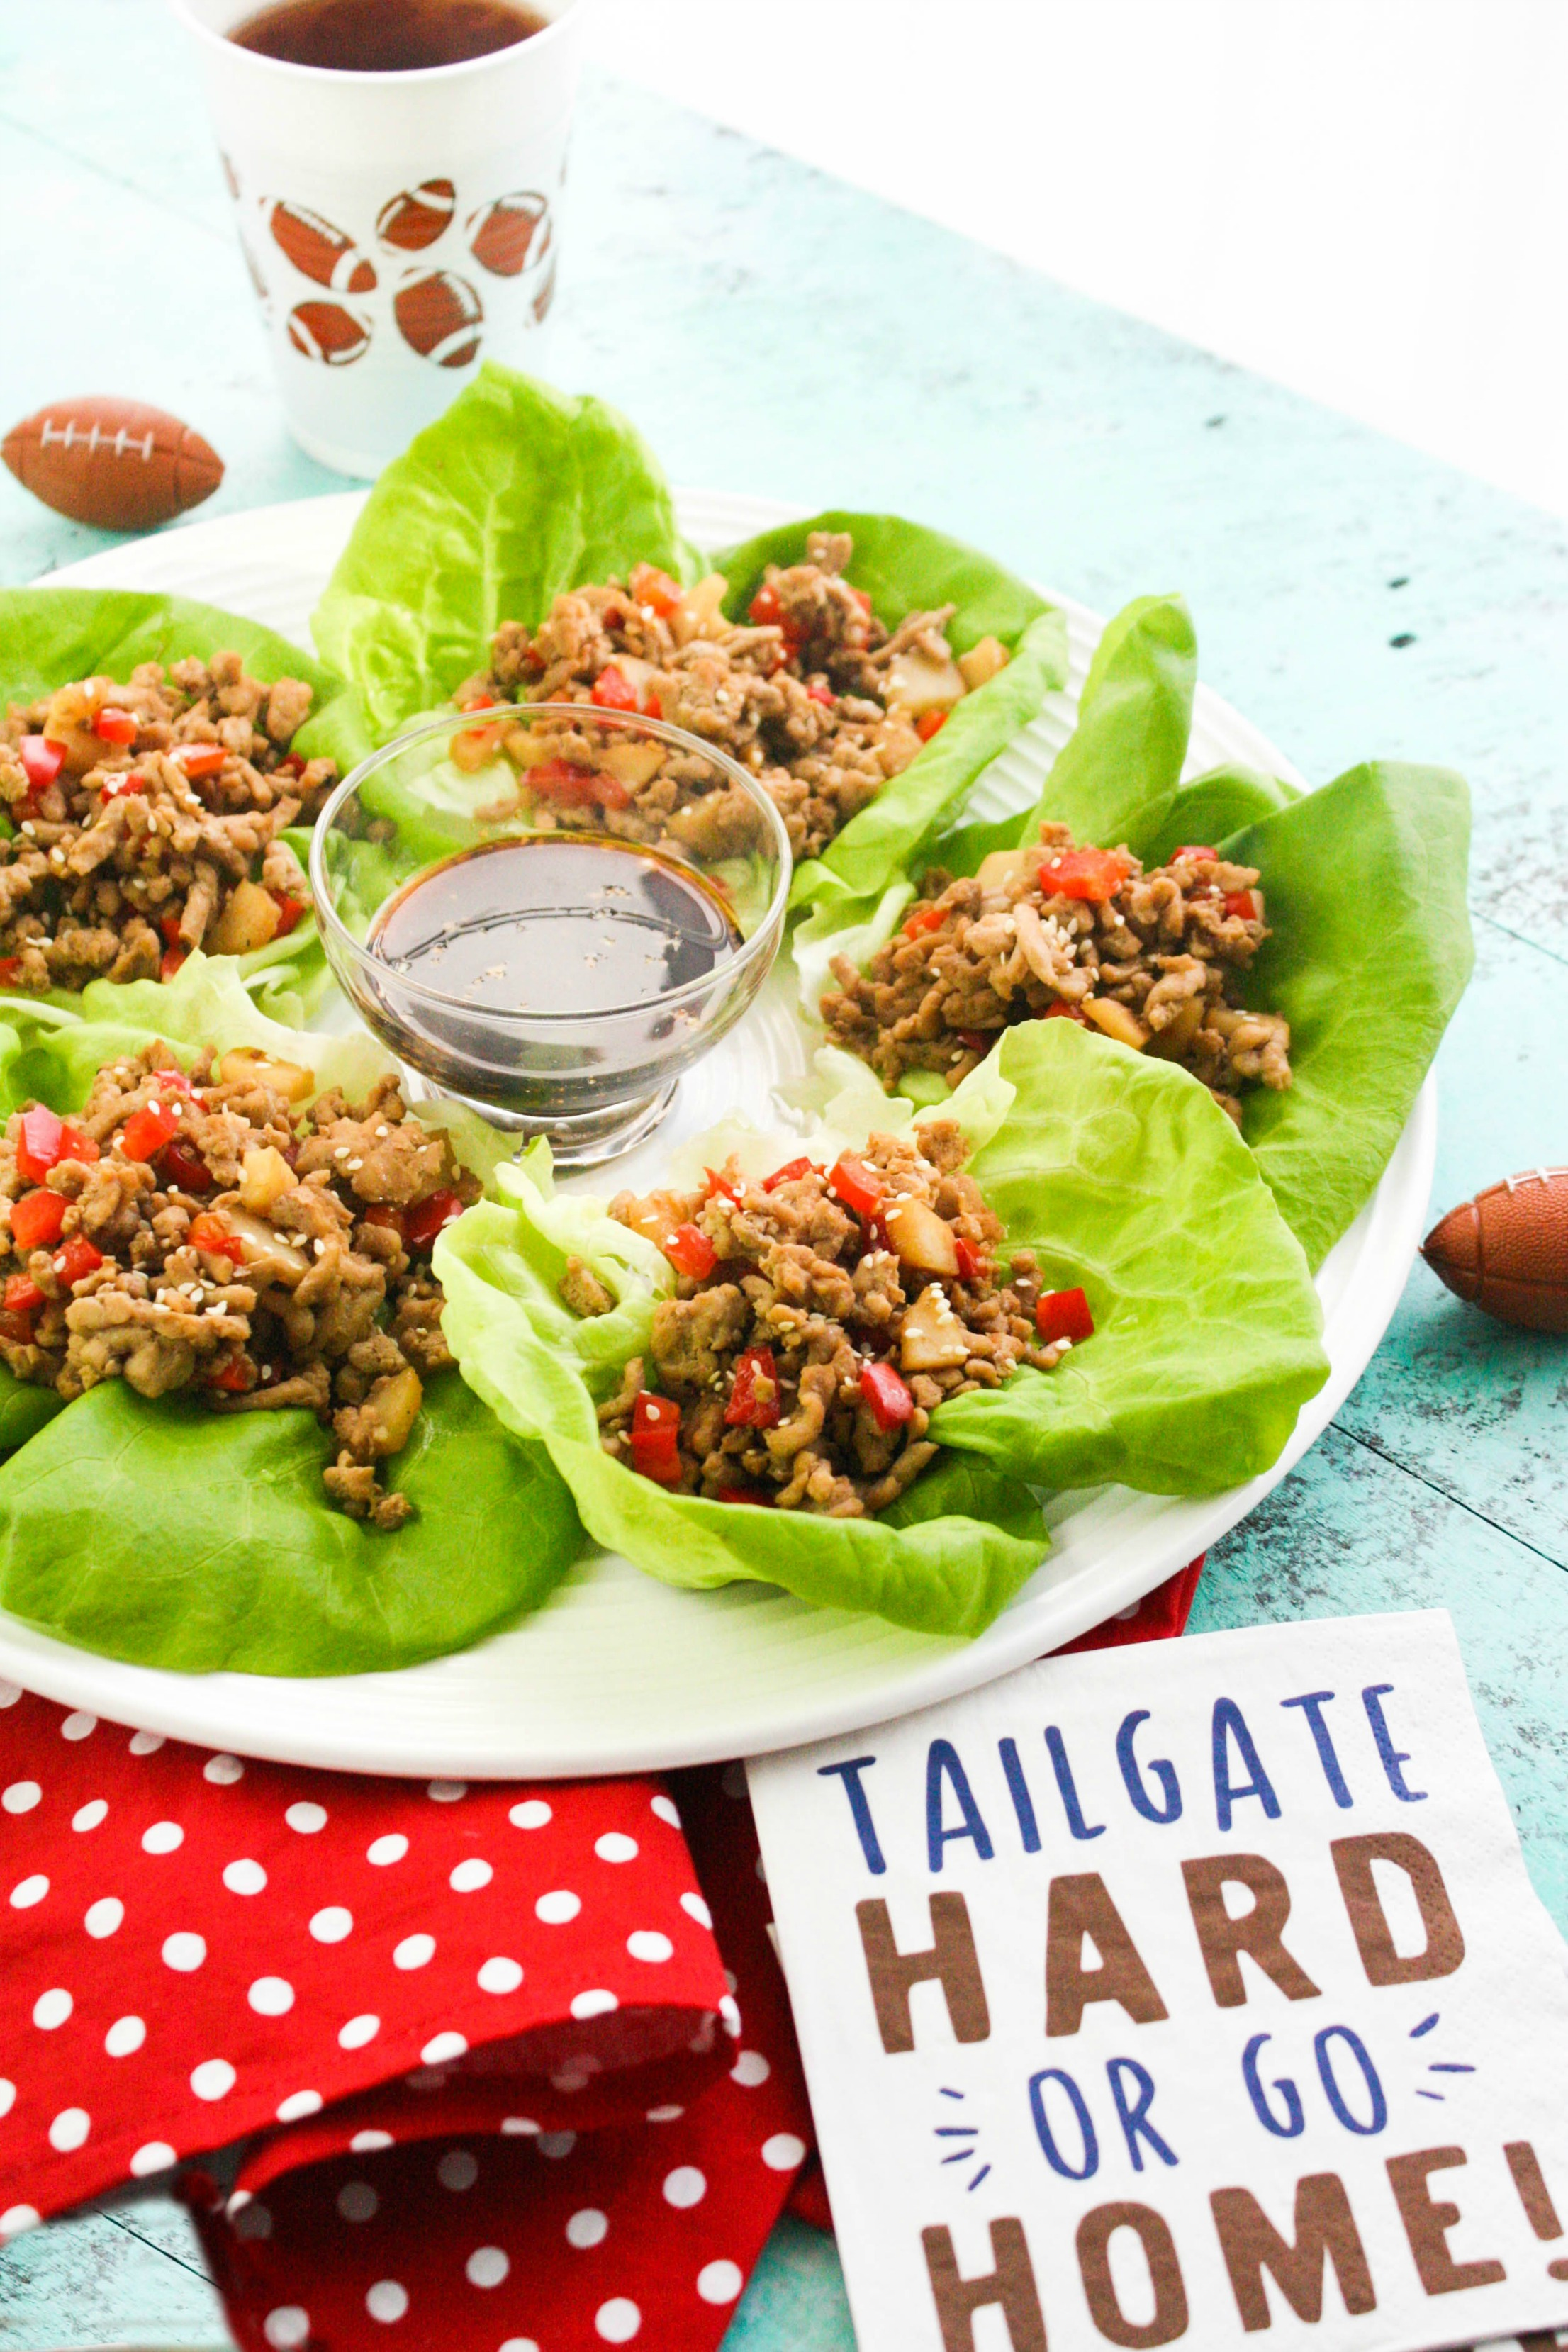 Touchdown Turkey Lettuce Wraps are healthy and delicious - fun for a game-day spread. Touchdown Turkey Lettuce Wraps are so easy to make and tasty, too!